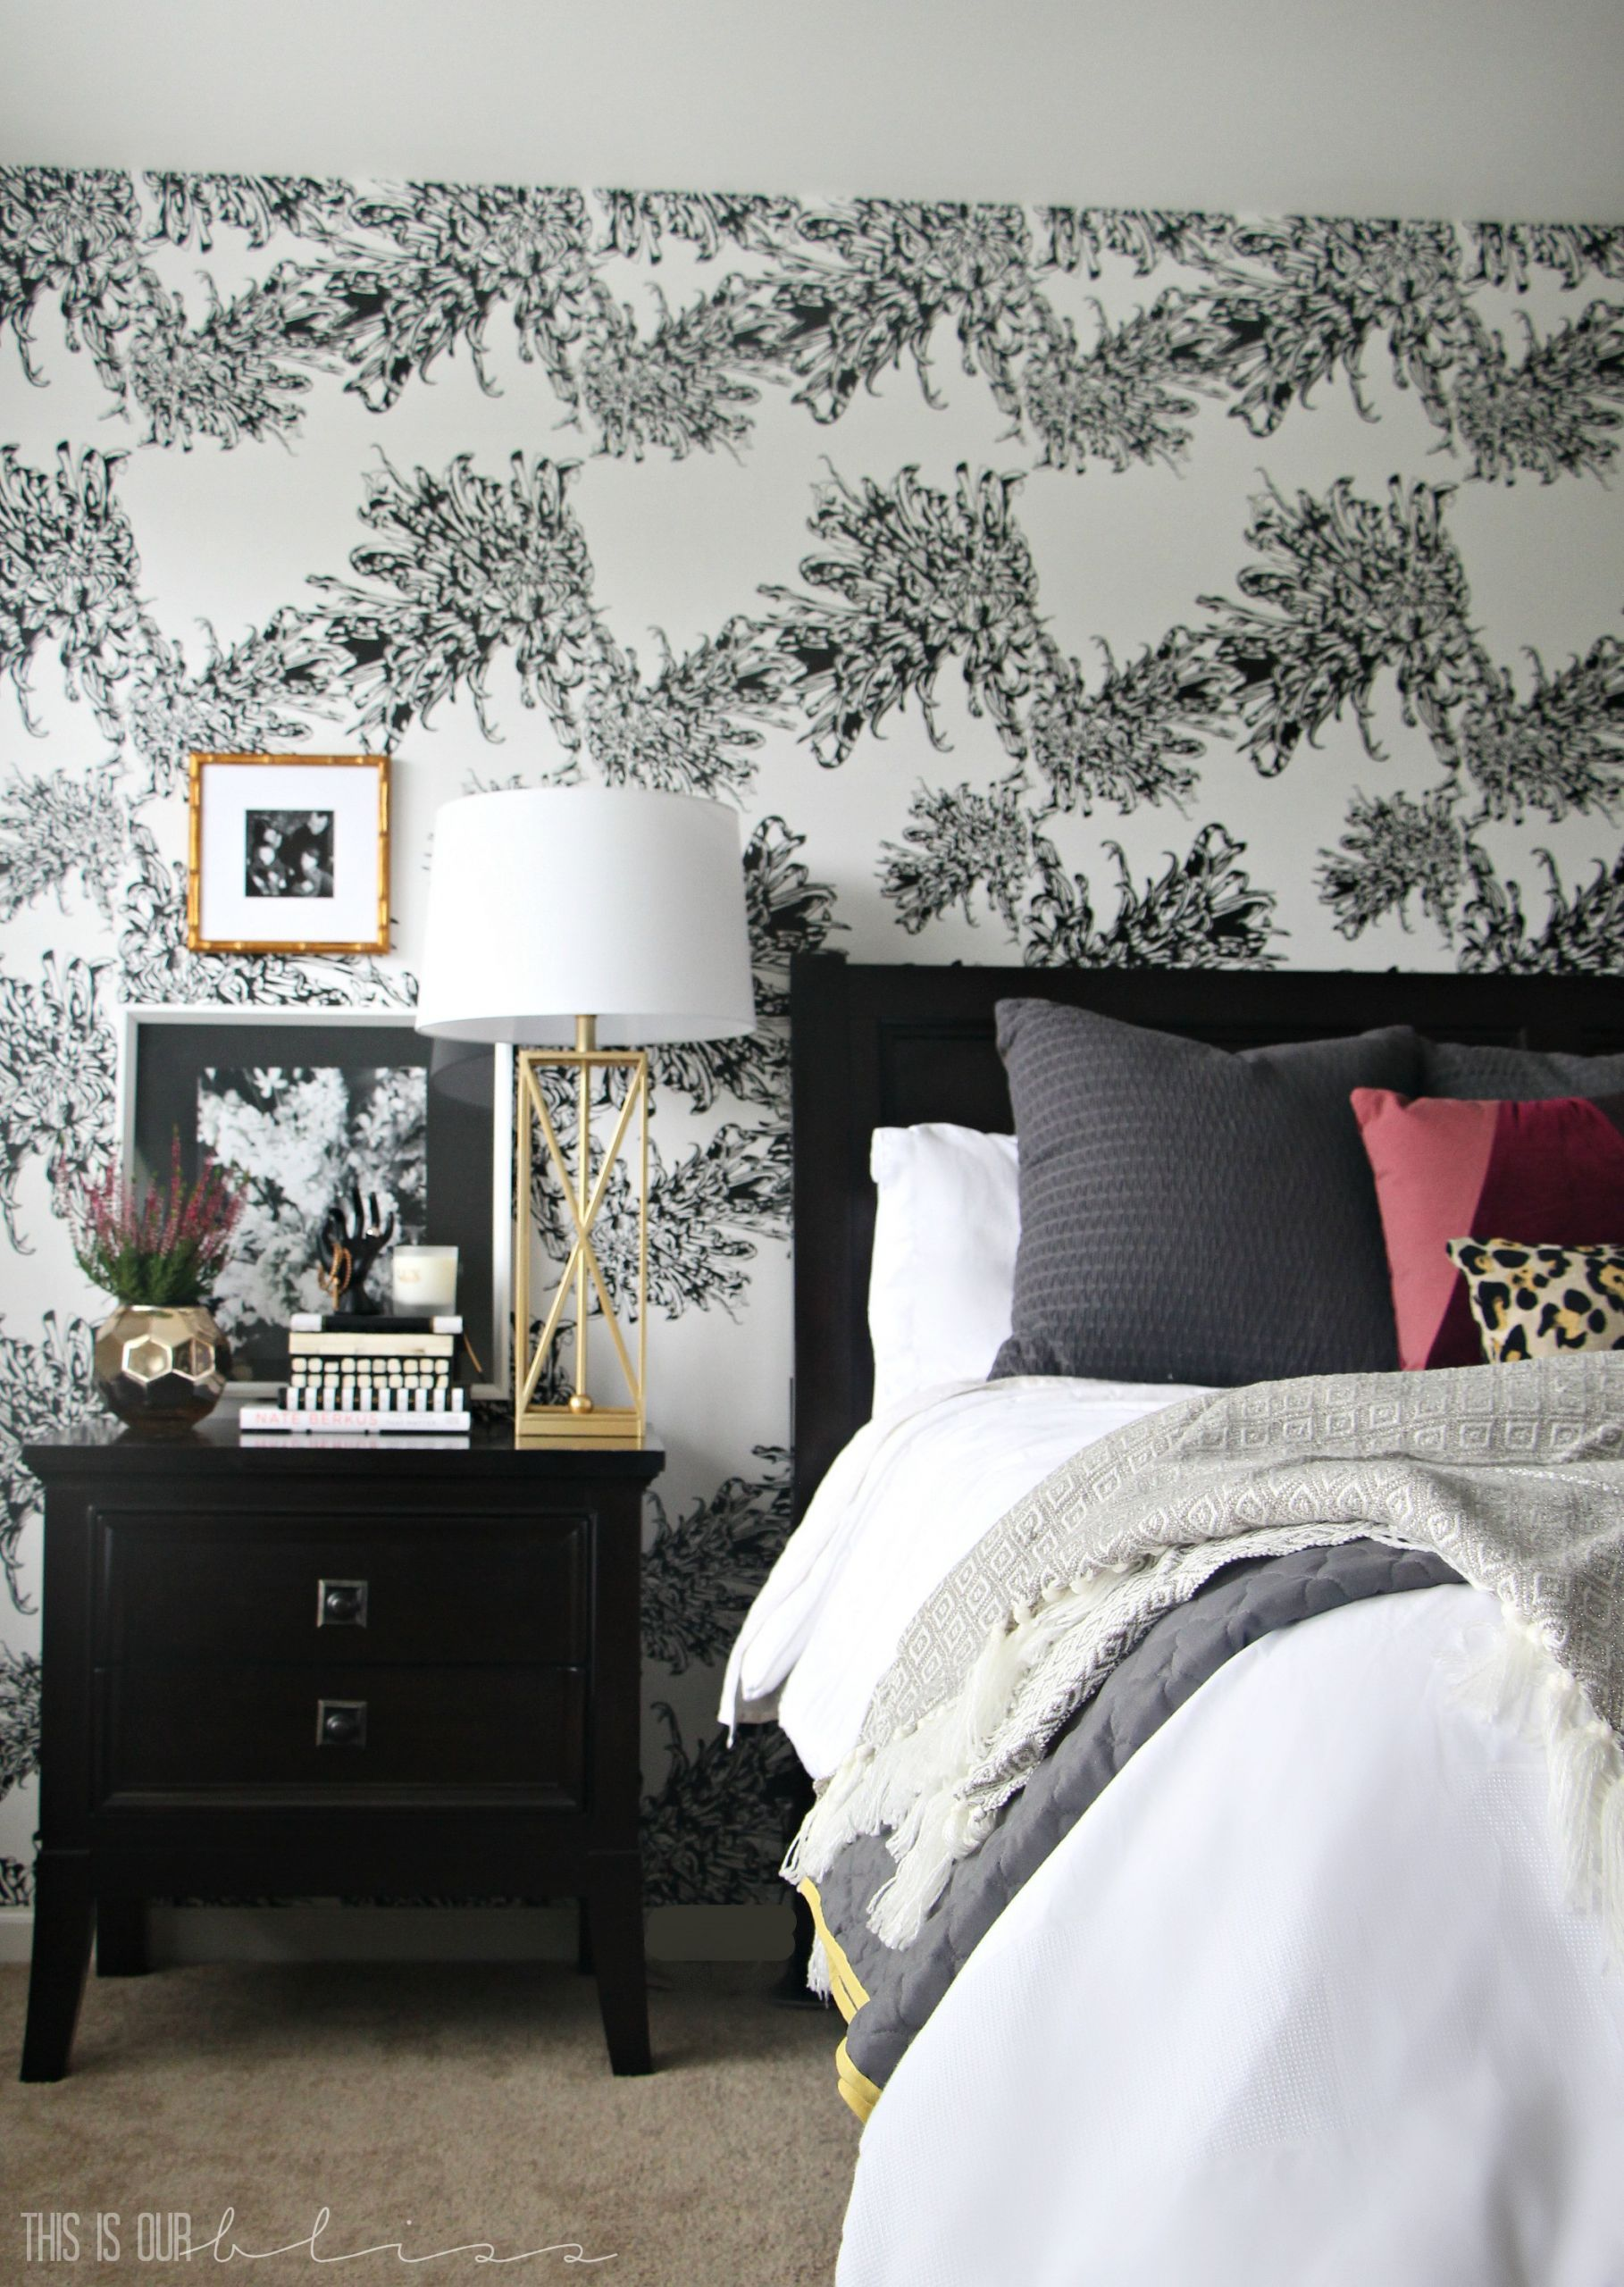 Wall Pictures For Bedroom  Master Bedroom Accent Wall with Wallpaper This is our Bliss